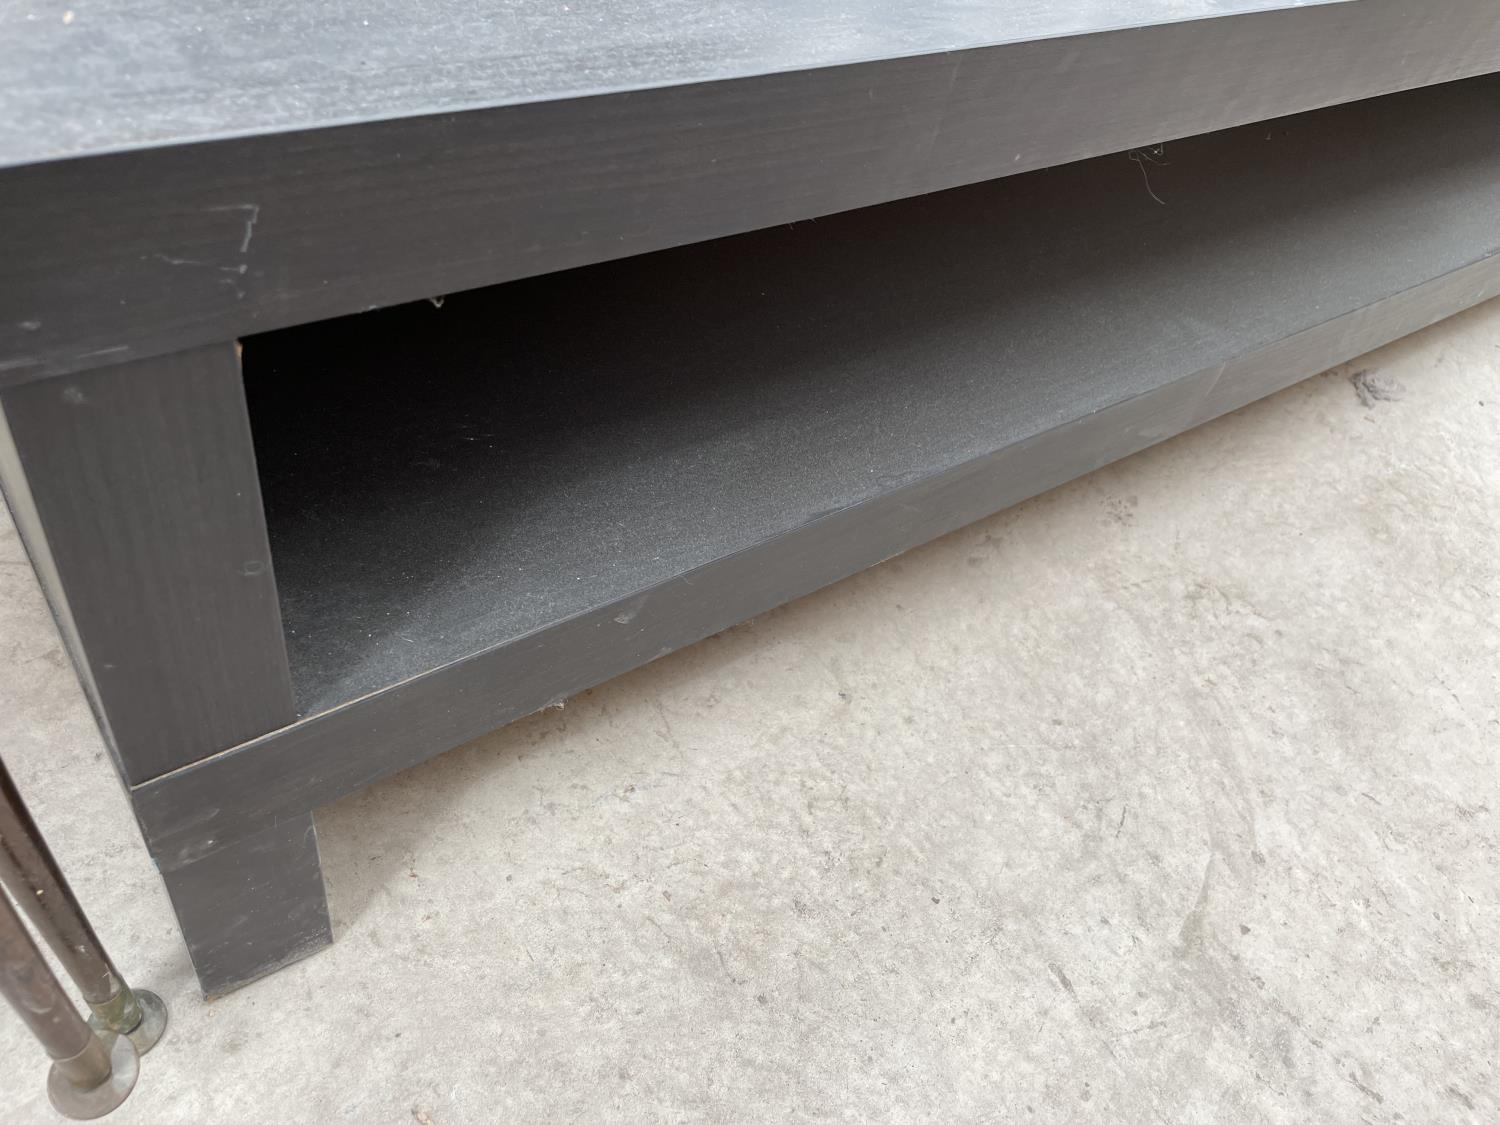 AN IKEA LOW BLACK COFFEE TABLE - Image 3 of 3